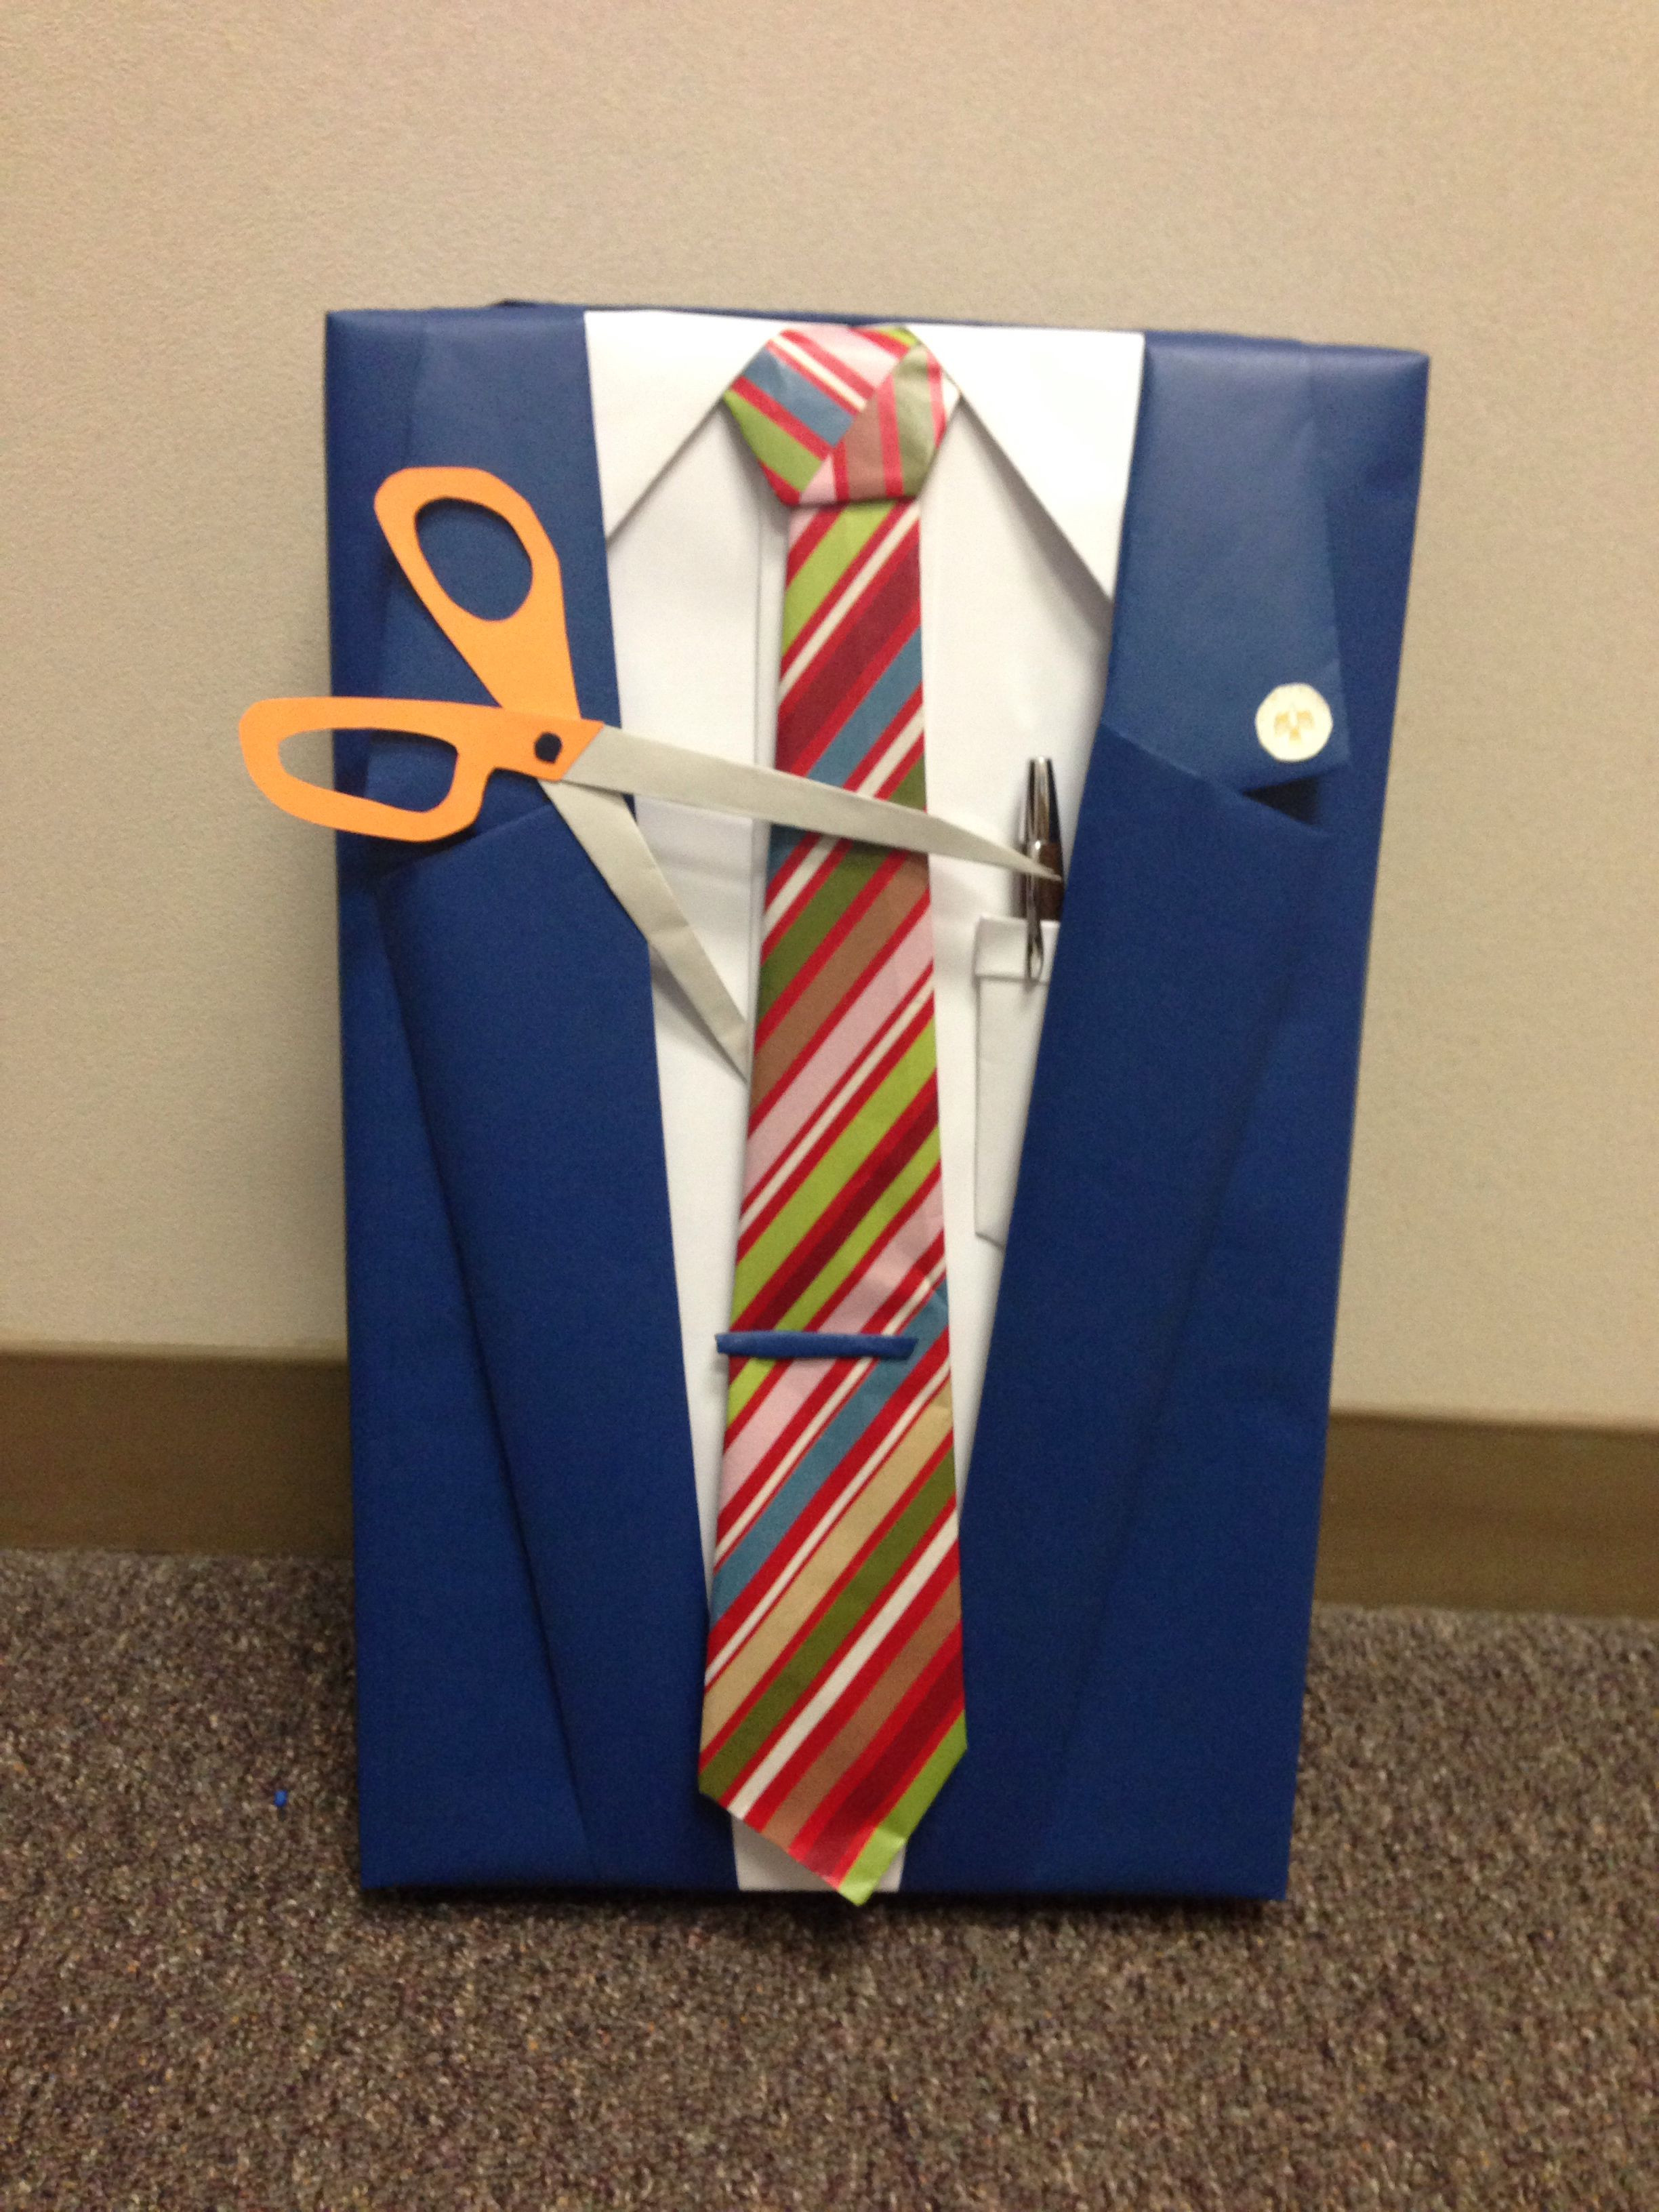 Best ideas about Gift Wrapping Ideas For Him . Save or Pin Retirement t wrap idea manly t wrap Suit and tie Now.